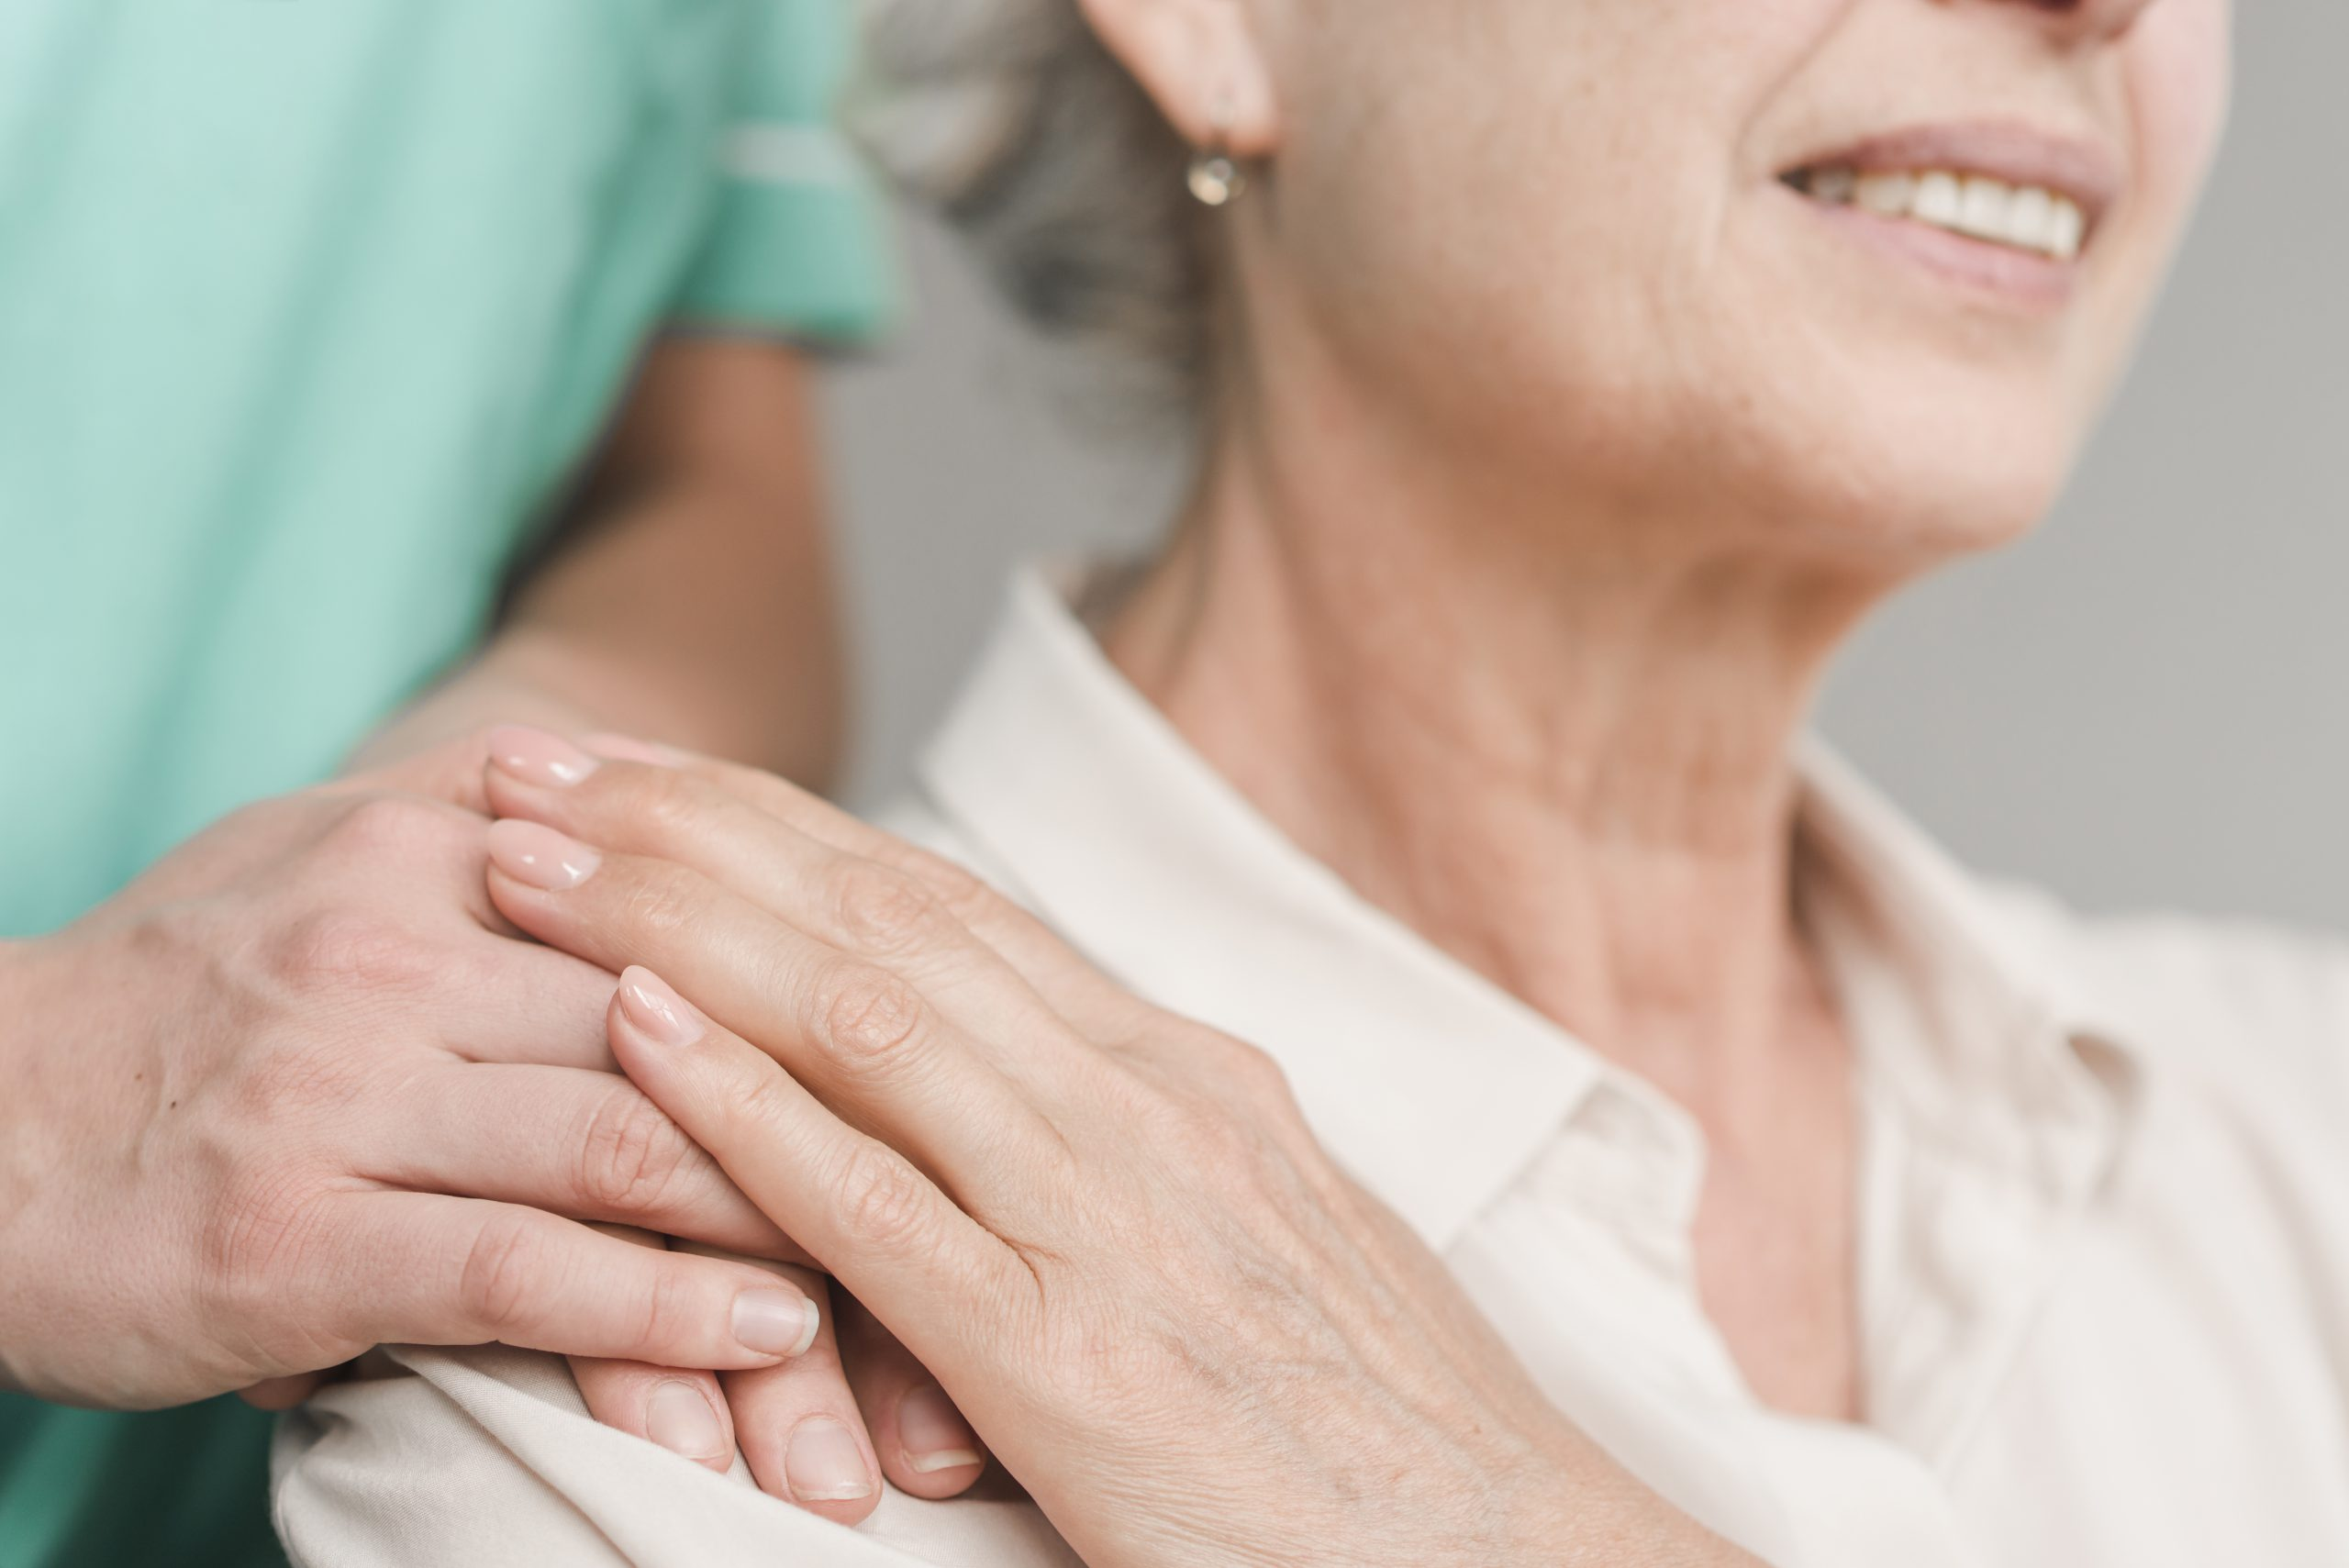 What You Need to Know About Becoming a Home Health Aide in NYC